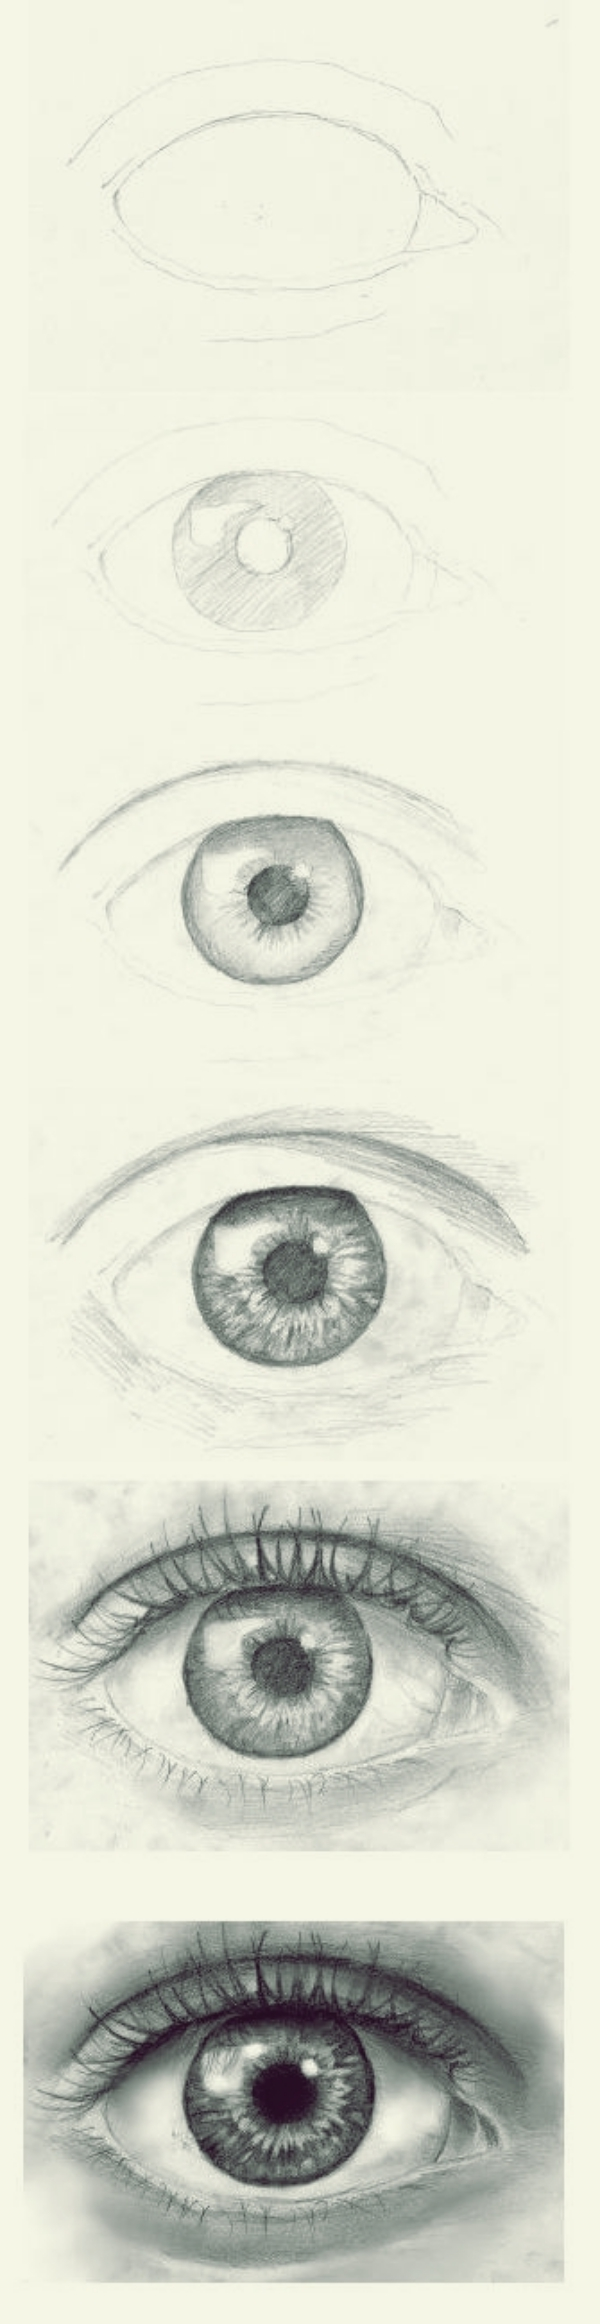 How To Draw An Eye Step By Step Pictures Guides